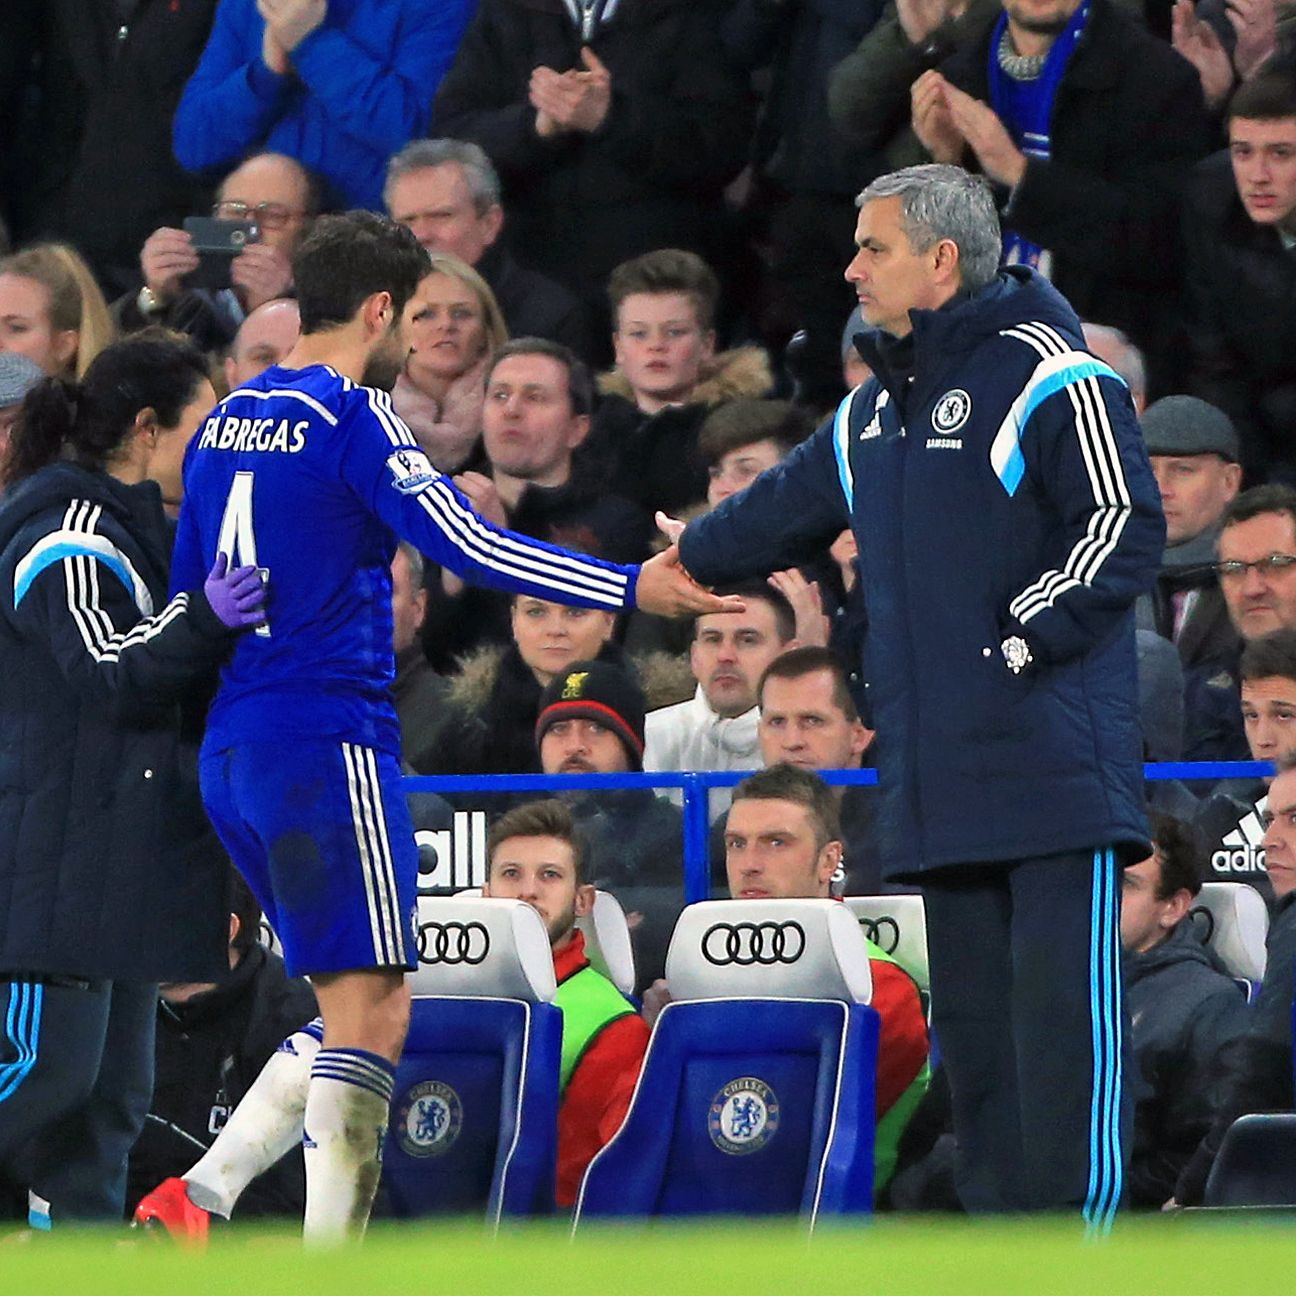 Cesc Fabregas proved to be a key addition for Chelsea and Jose Mourinho en route to their 2014-15 Premier League title.